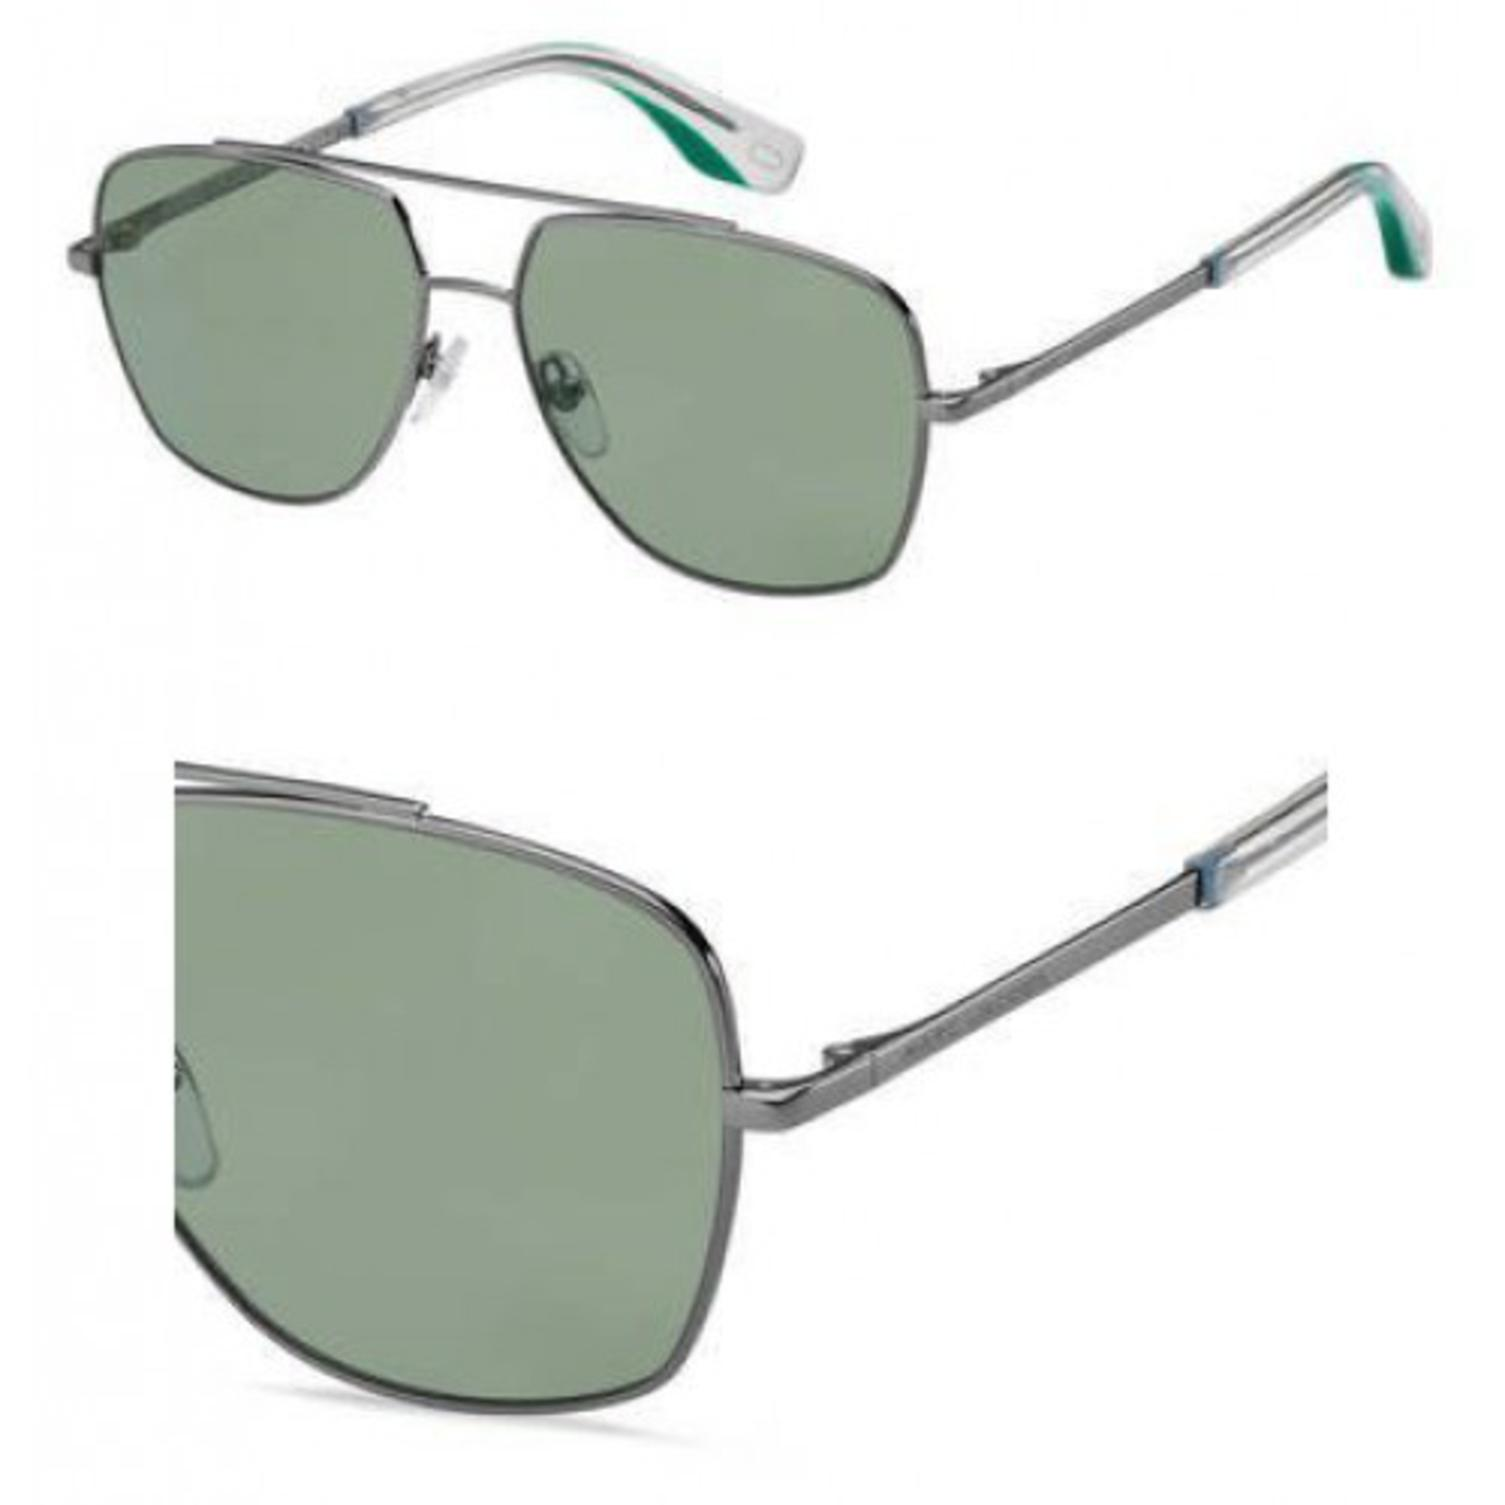 Sunglasses Marc Jacobs 271 /S 0ASR Dark Rust Green / QT green lens